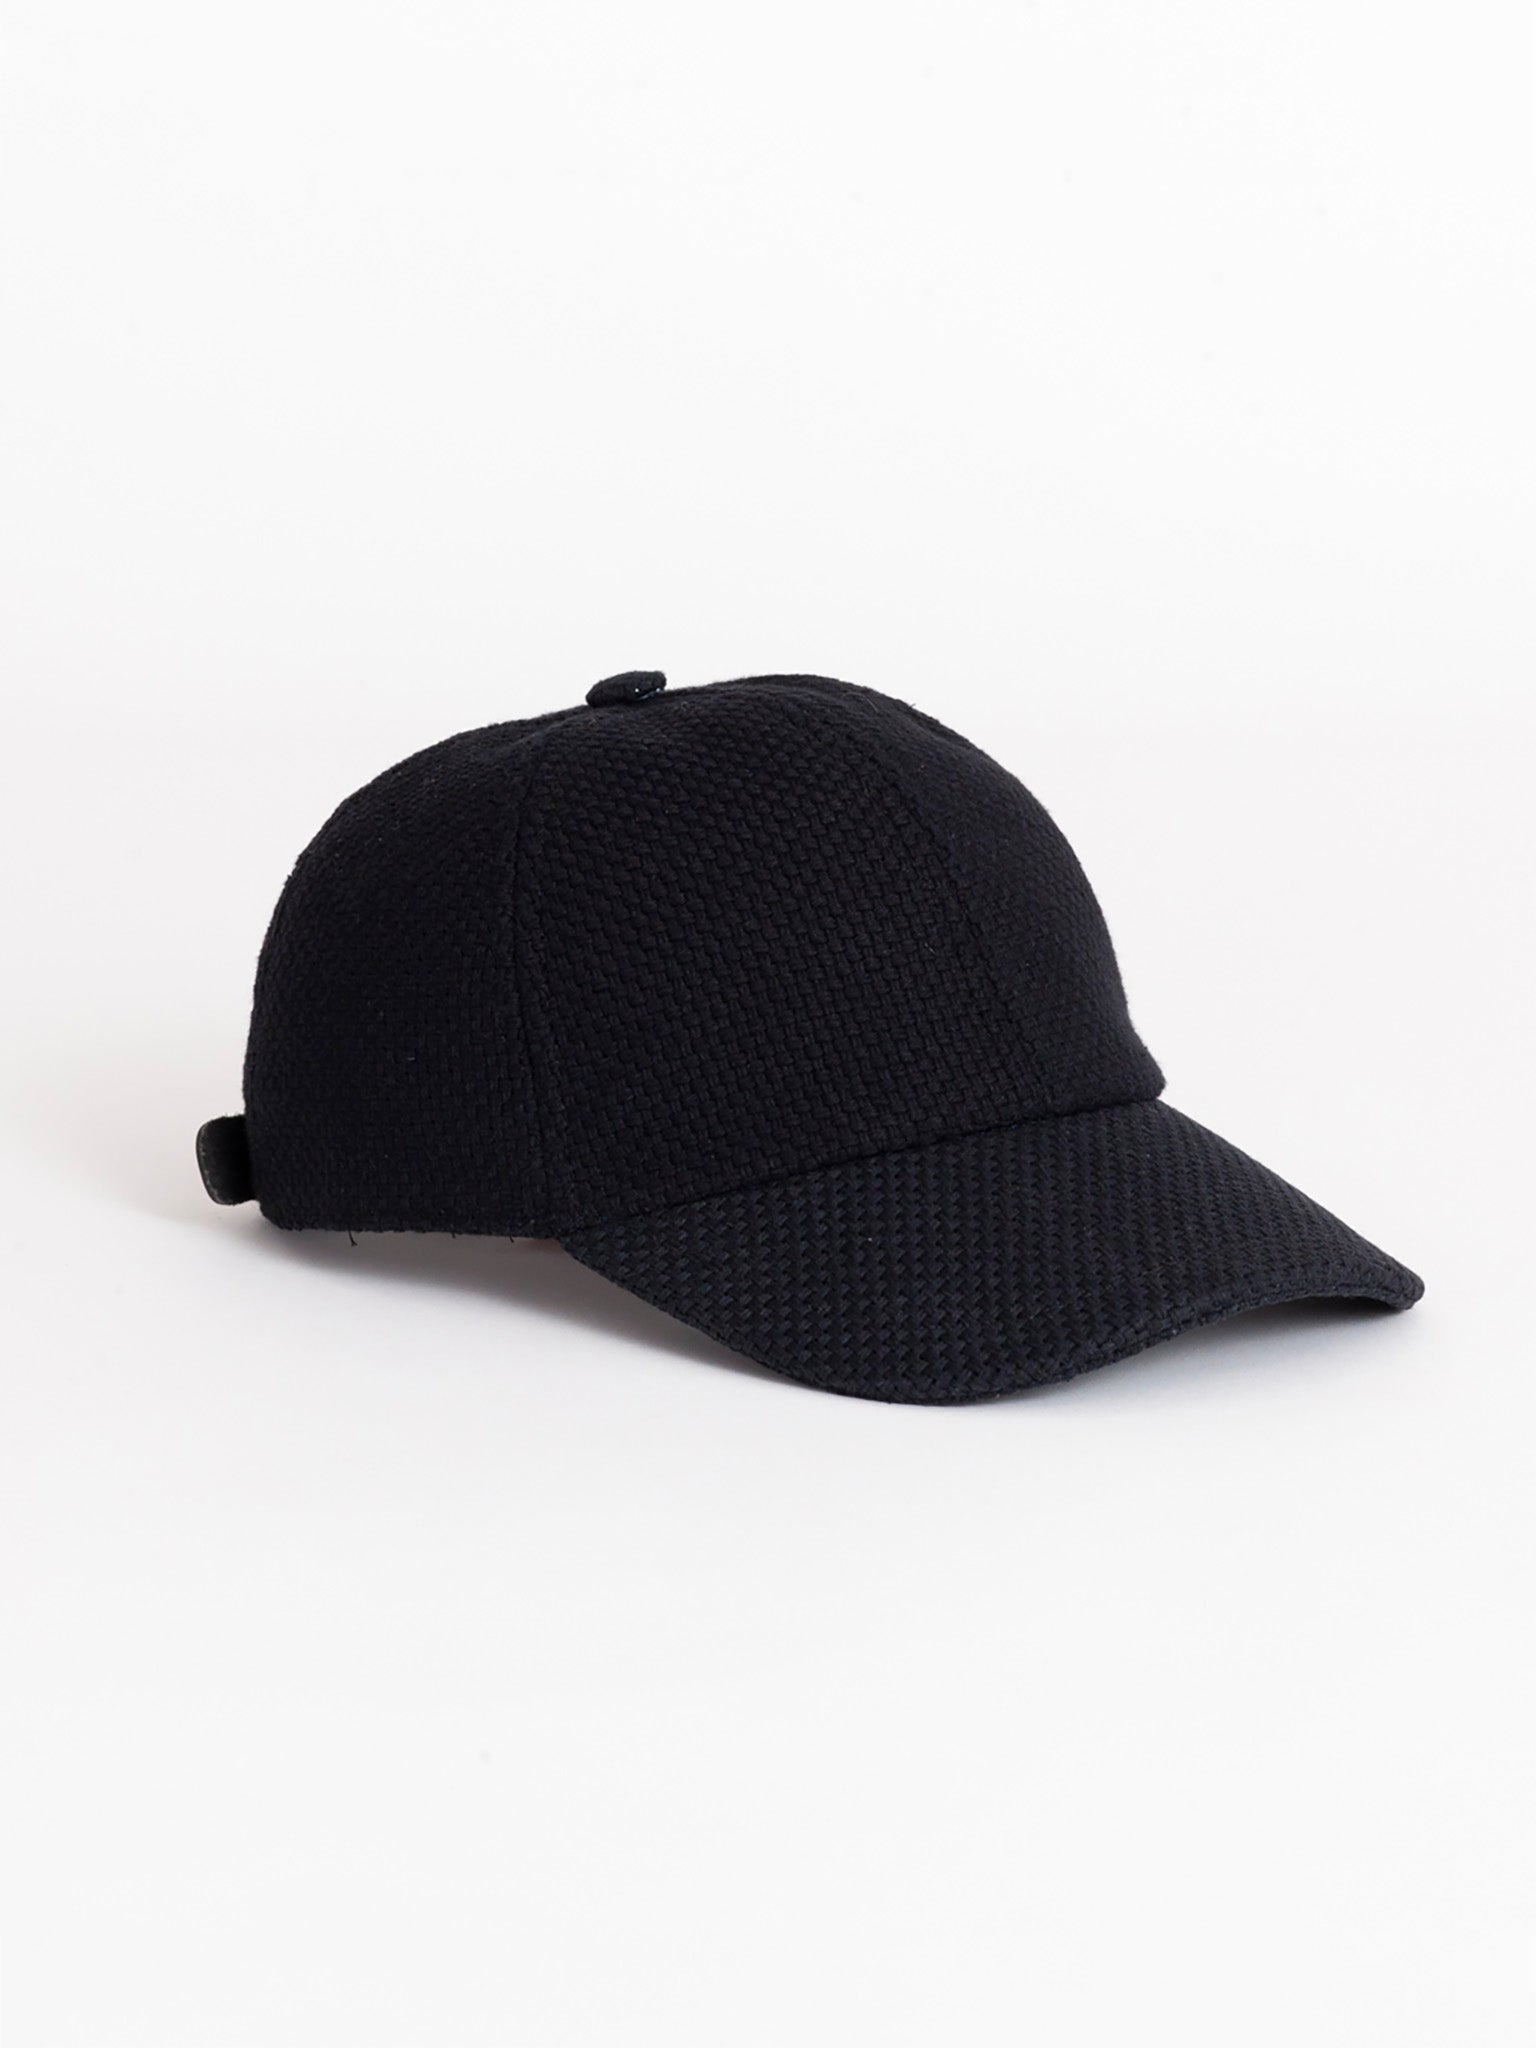 Reality Studio Edi cap Black